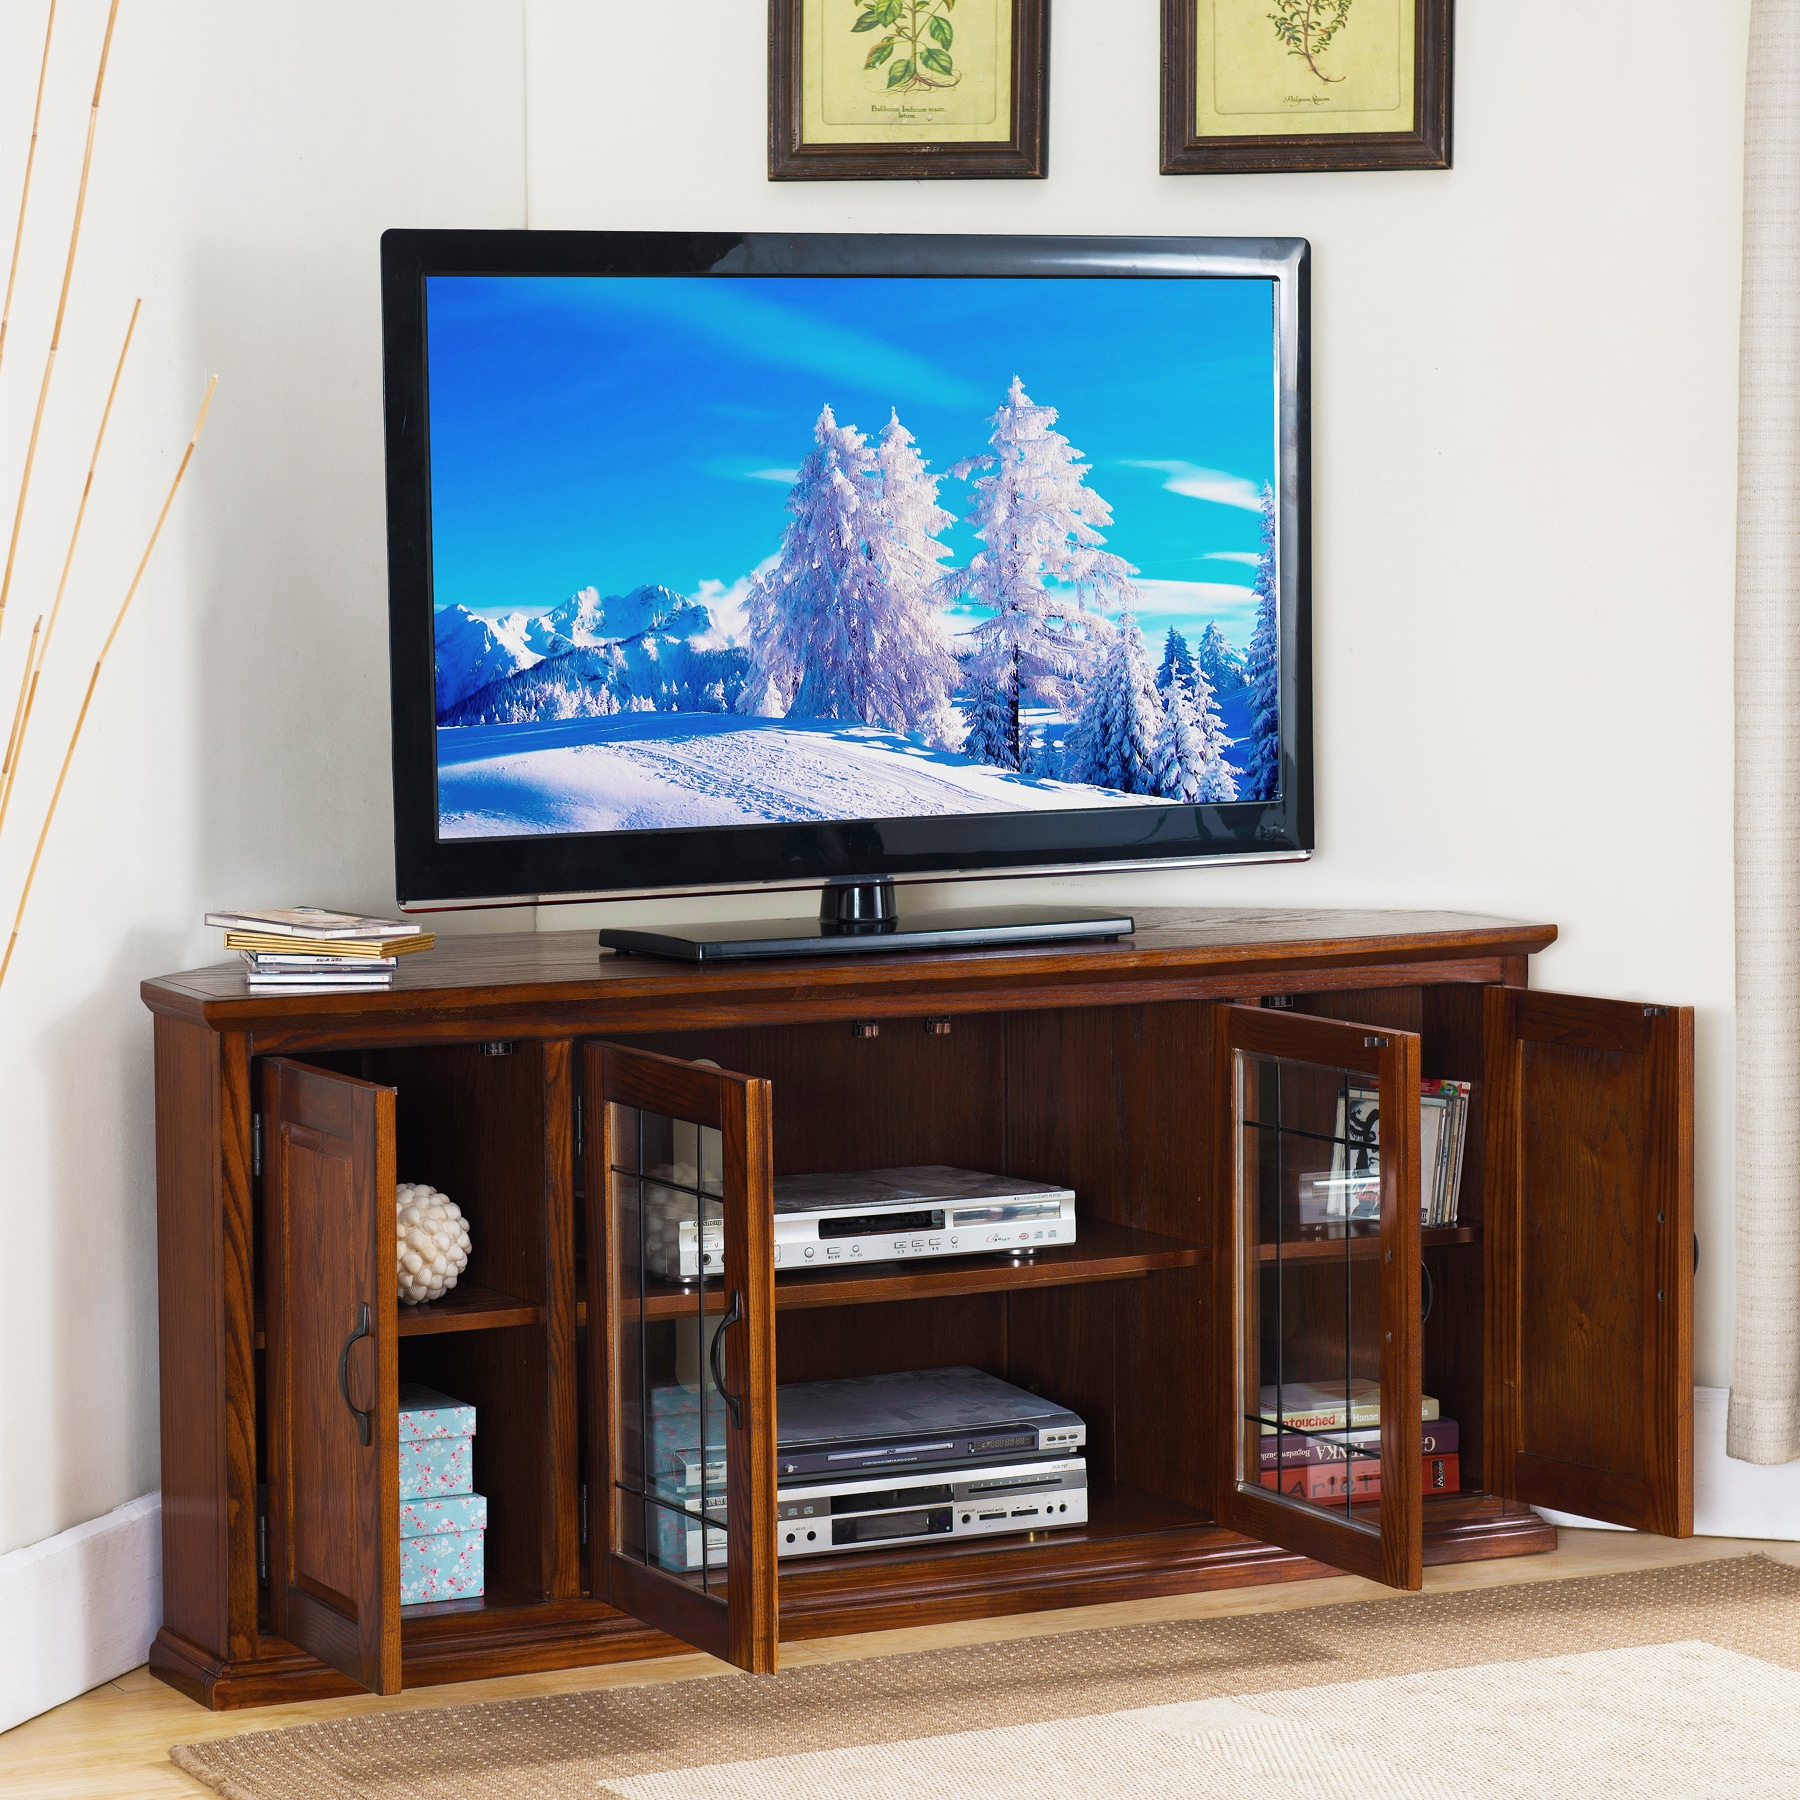 Burnished Oak Finish Wood And Leaded Gl 56 Inch Corner Tv Stand Free Shipping Today 20603764